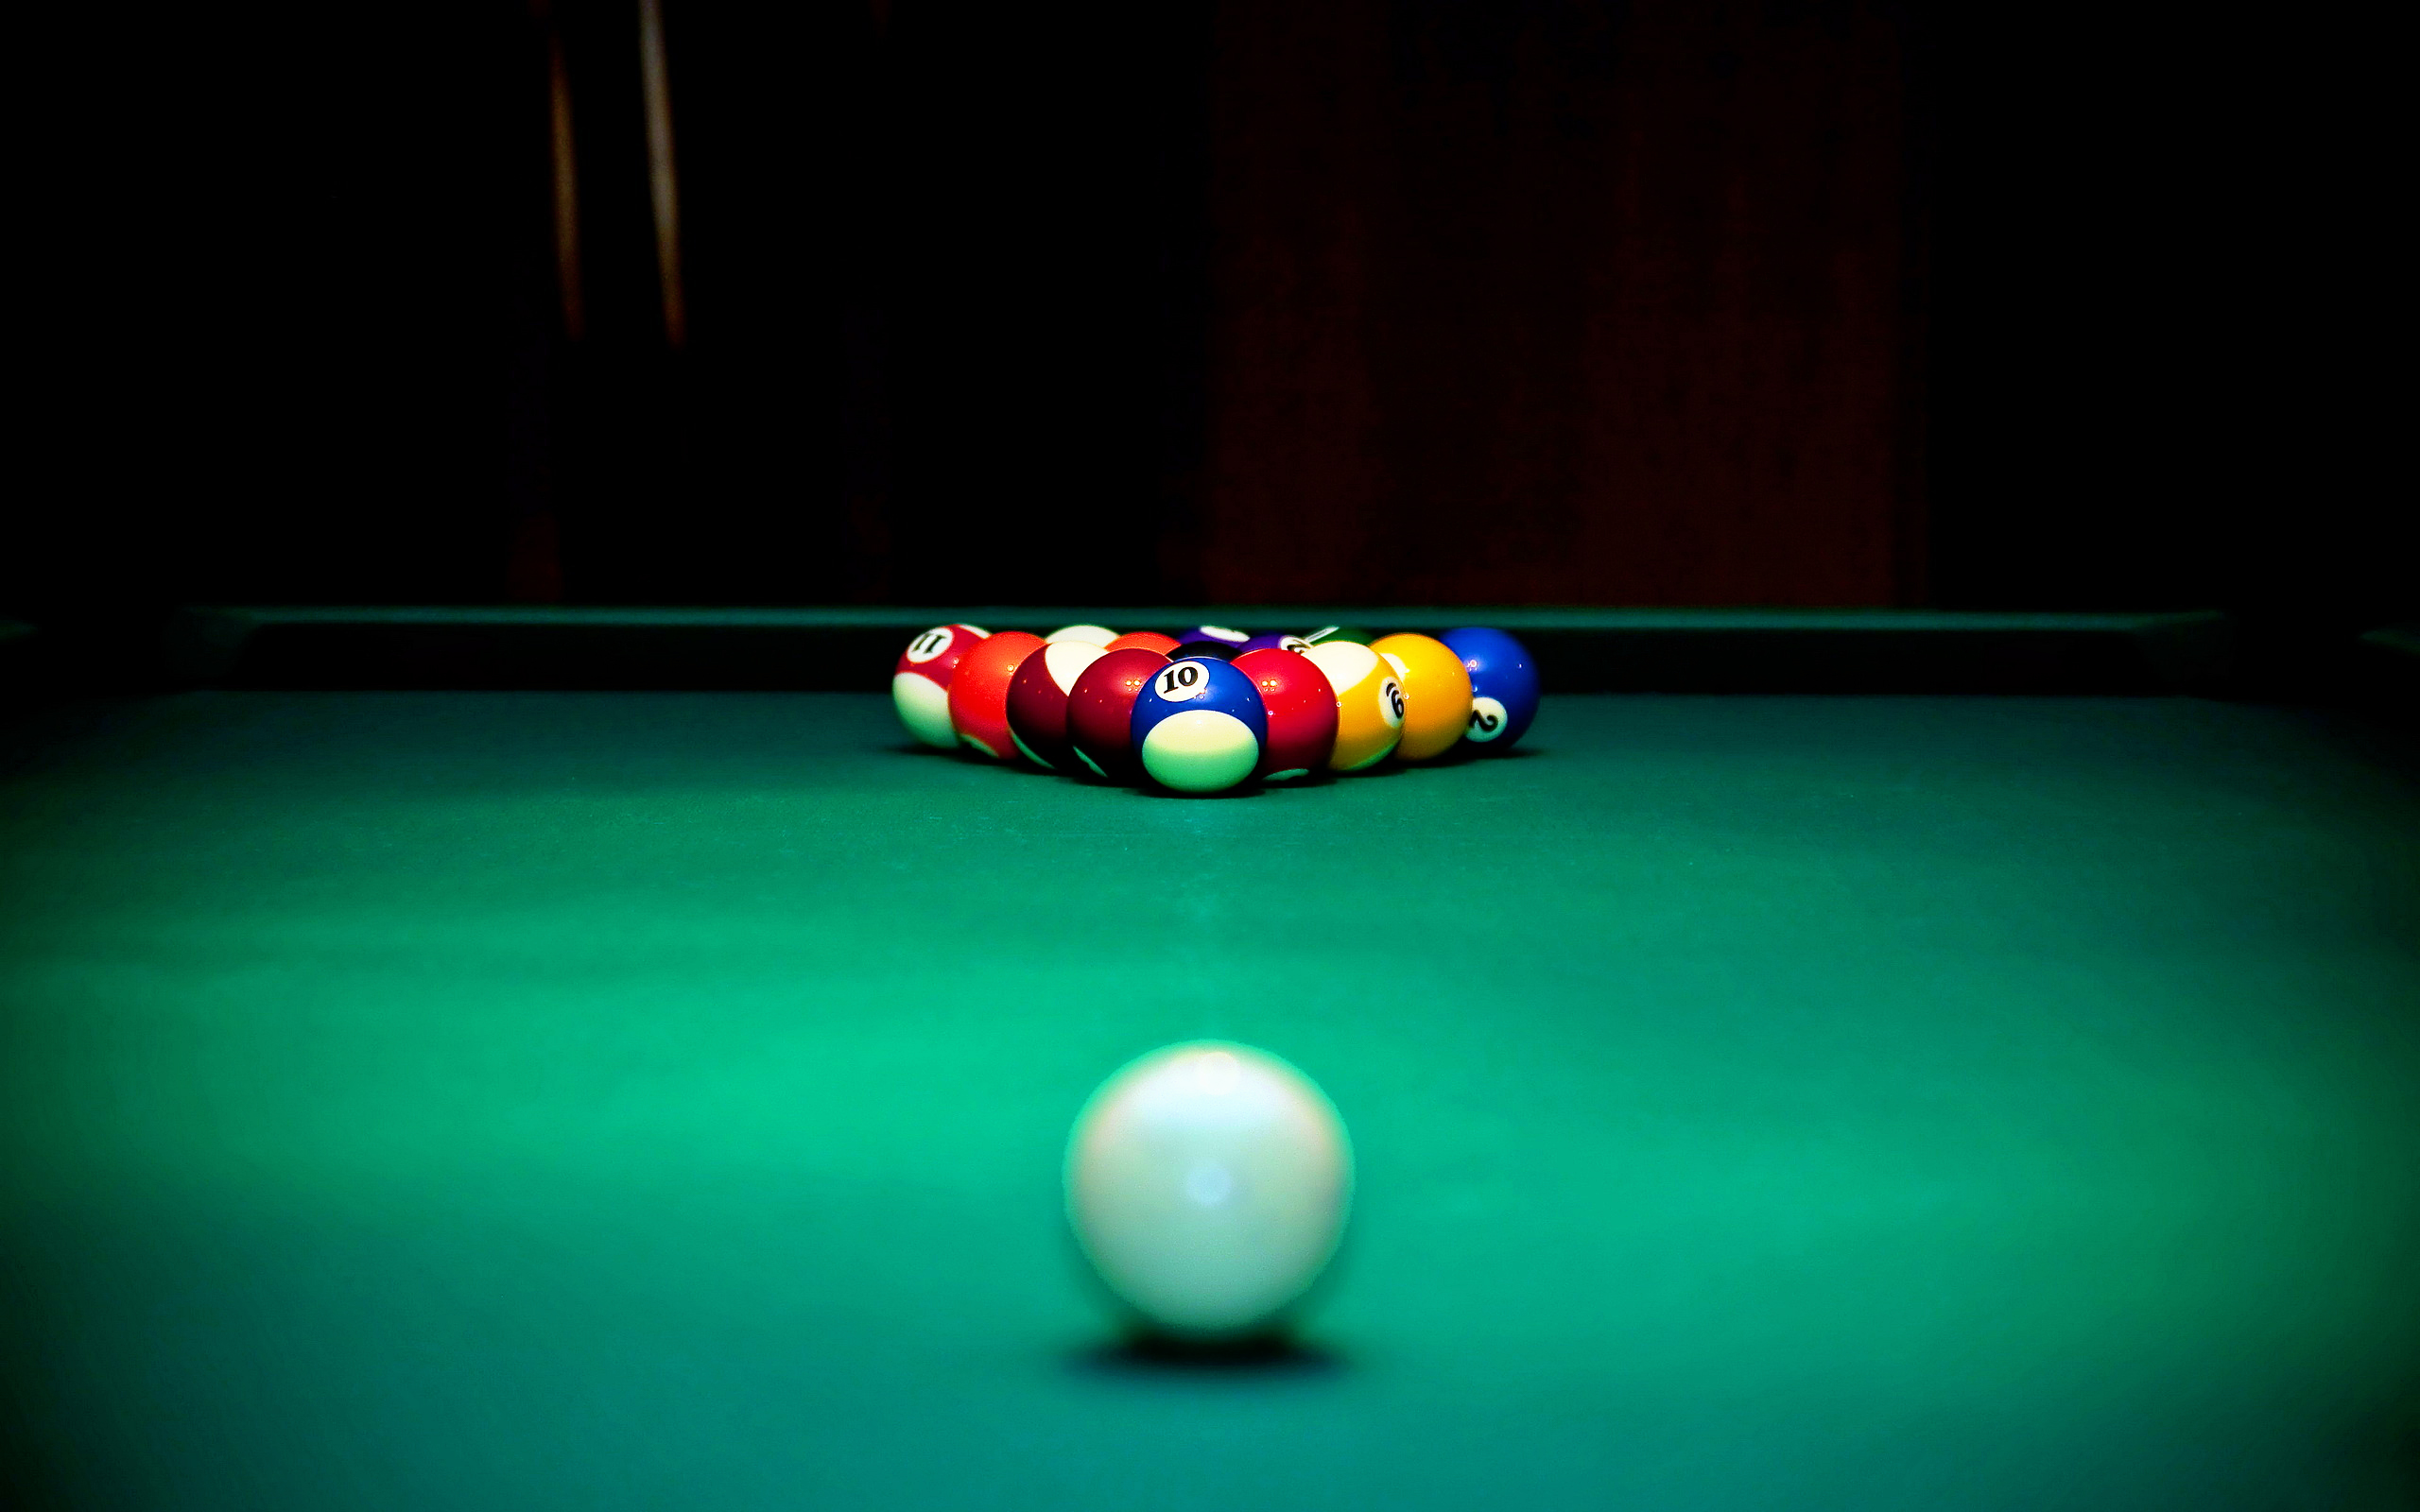 Billiards Balls Set for the Game 188.85 Kb